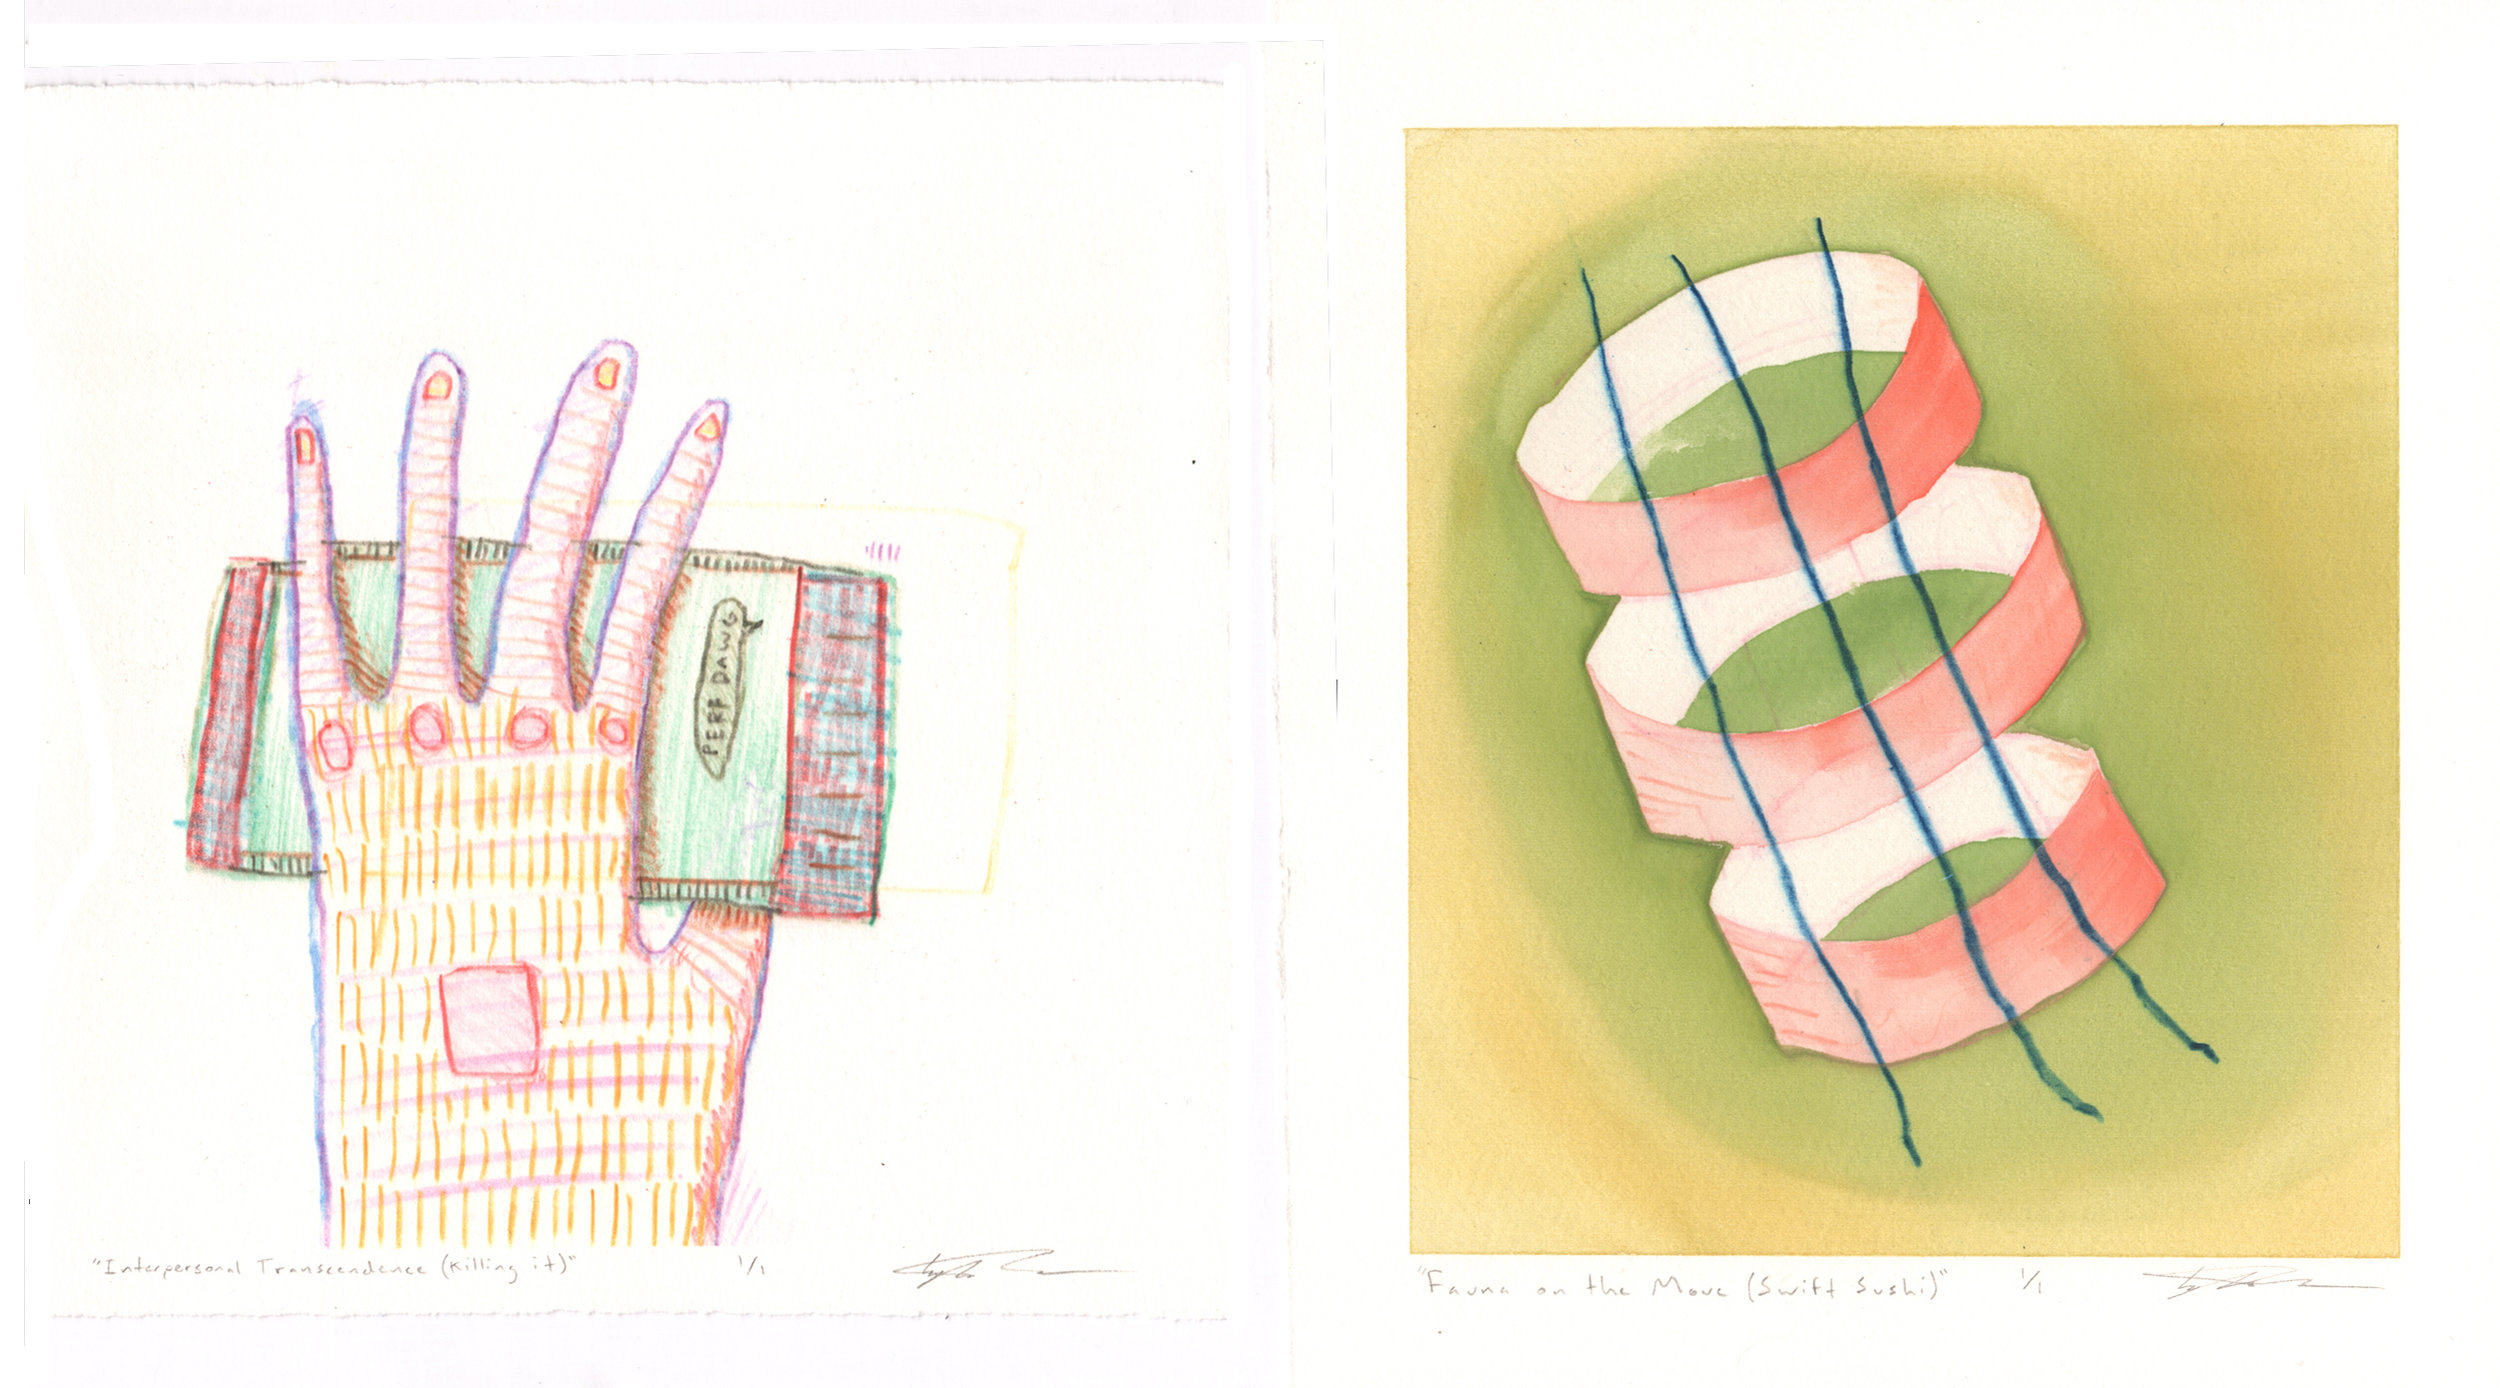 Tyler Green, Left: Interpersonal Transcendence (Killing It), Right: Fauna on the Move (Swift Sushi), monotype